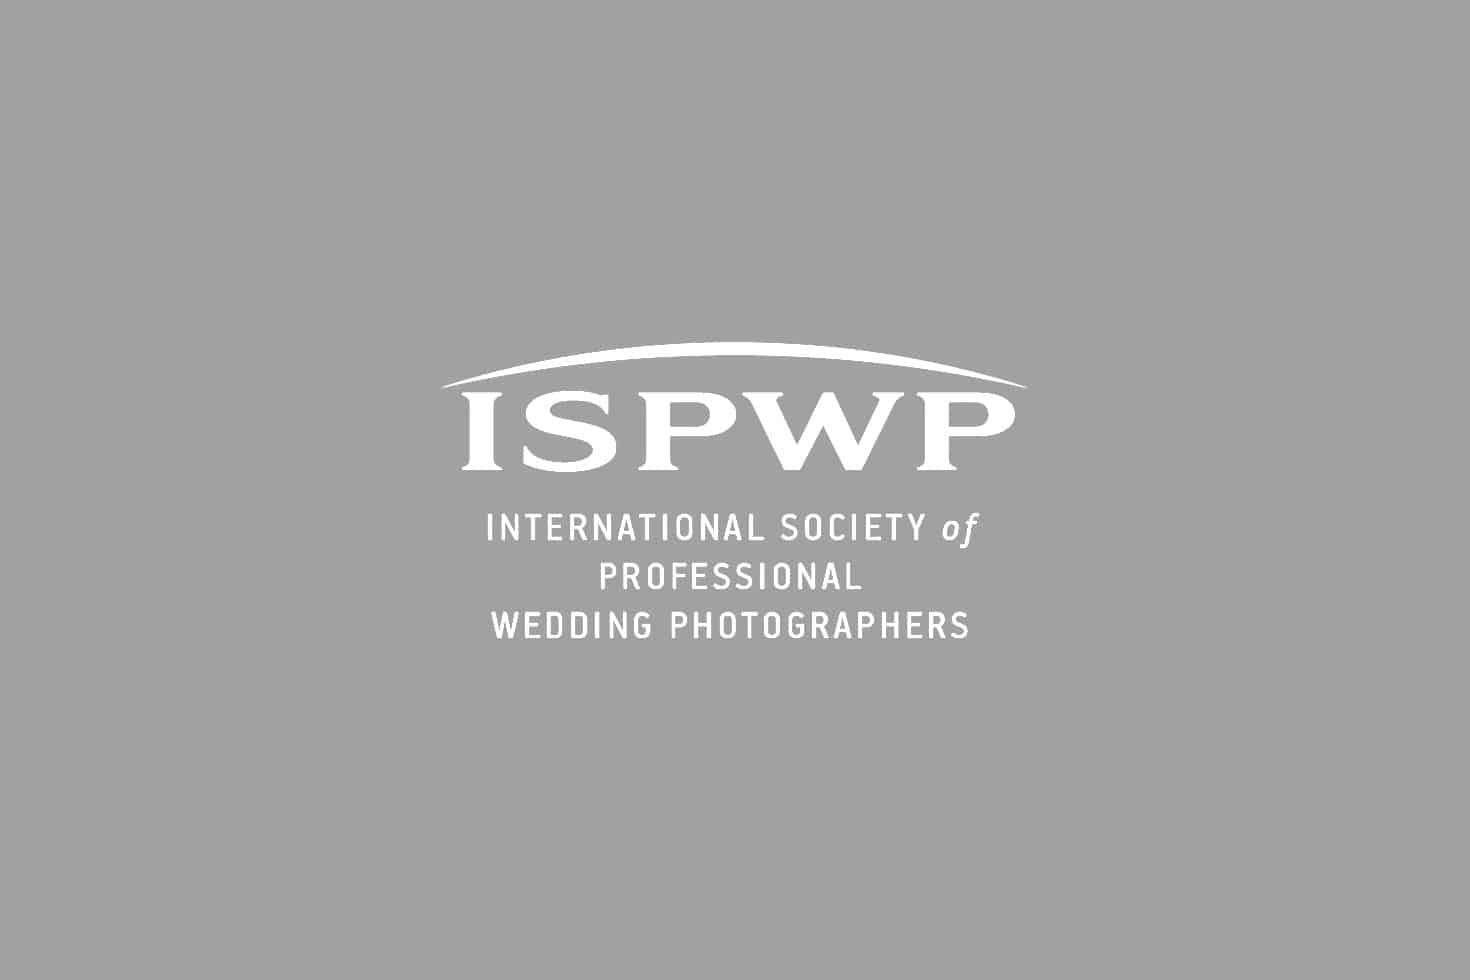 ispwp award winner